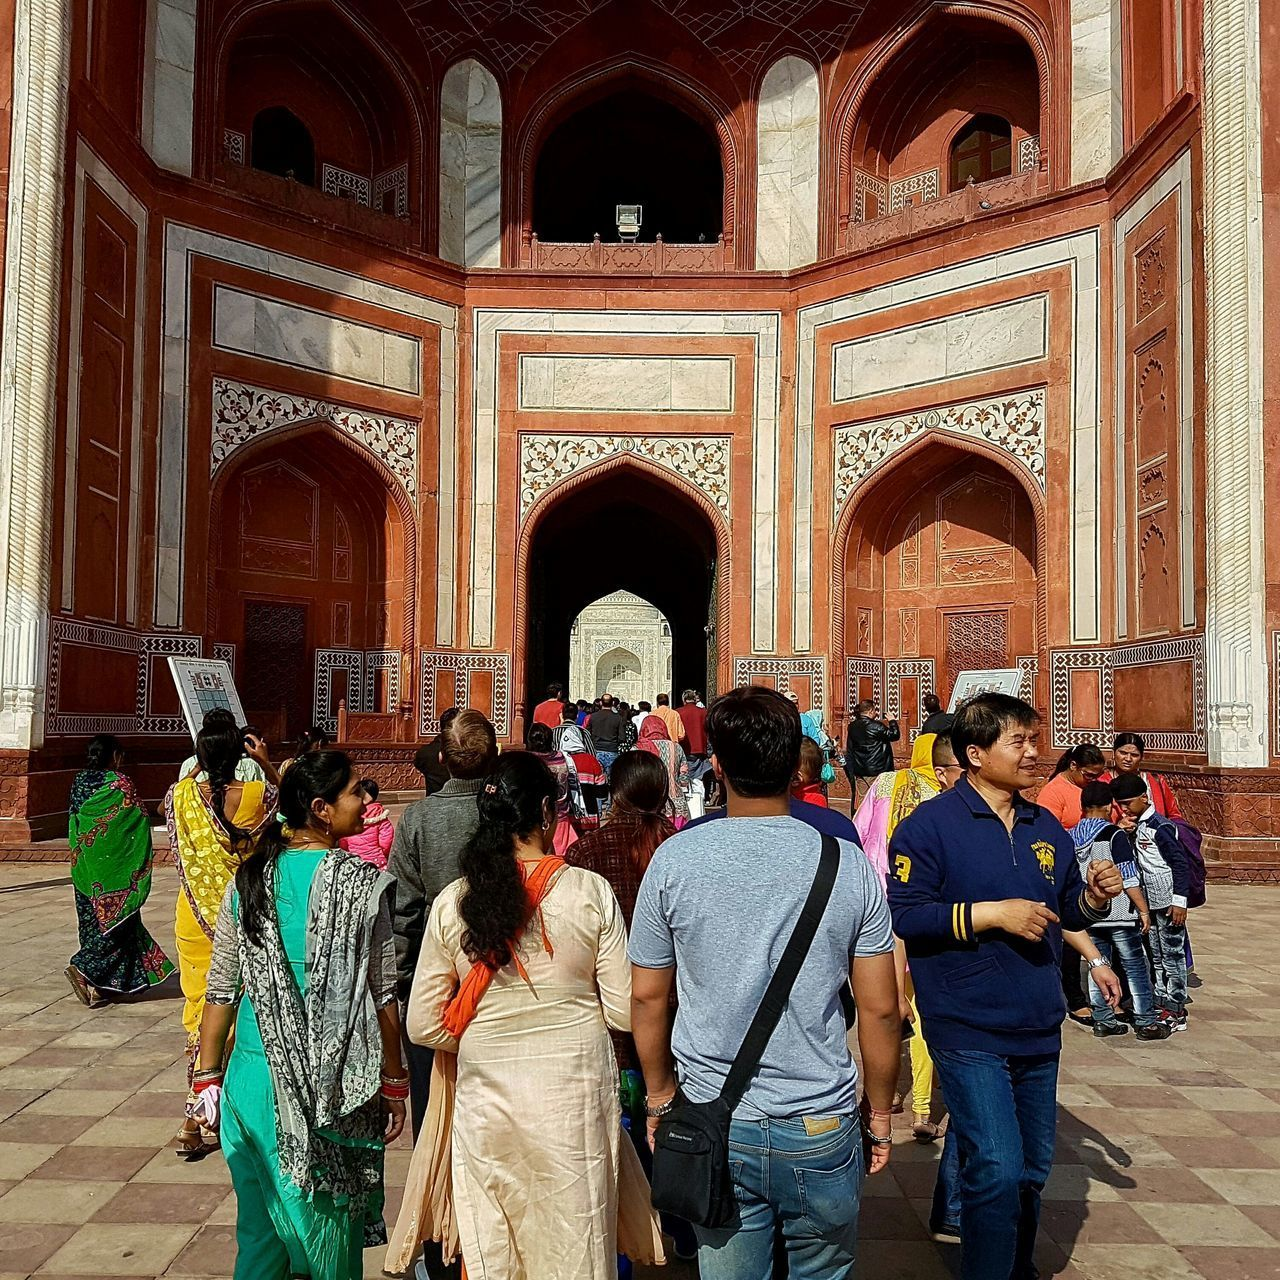 Large Group Of People Travel Destinations Religion Architecture Men Built Structure Tourism Women Indoors  Arch Real People Place Of Worship People Adult Crowd Day Taj Mahal Mughalarchitecture Galaxys7 GalaxyS7Edge Seven Wonders Of The World Taj Mahal, Agra Gate